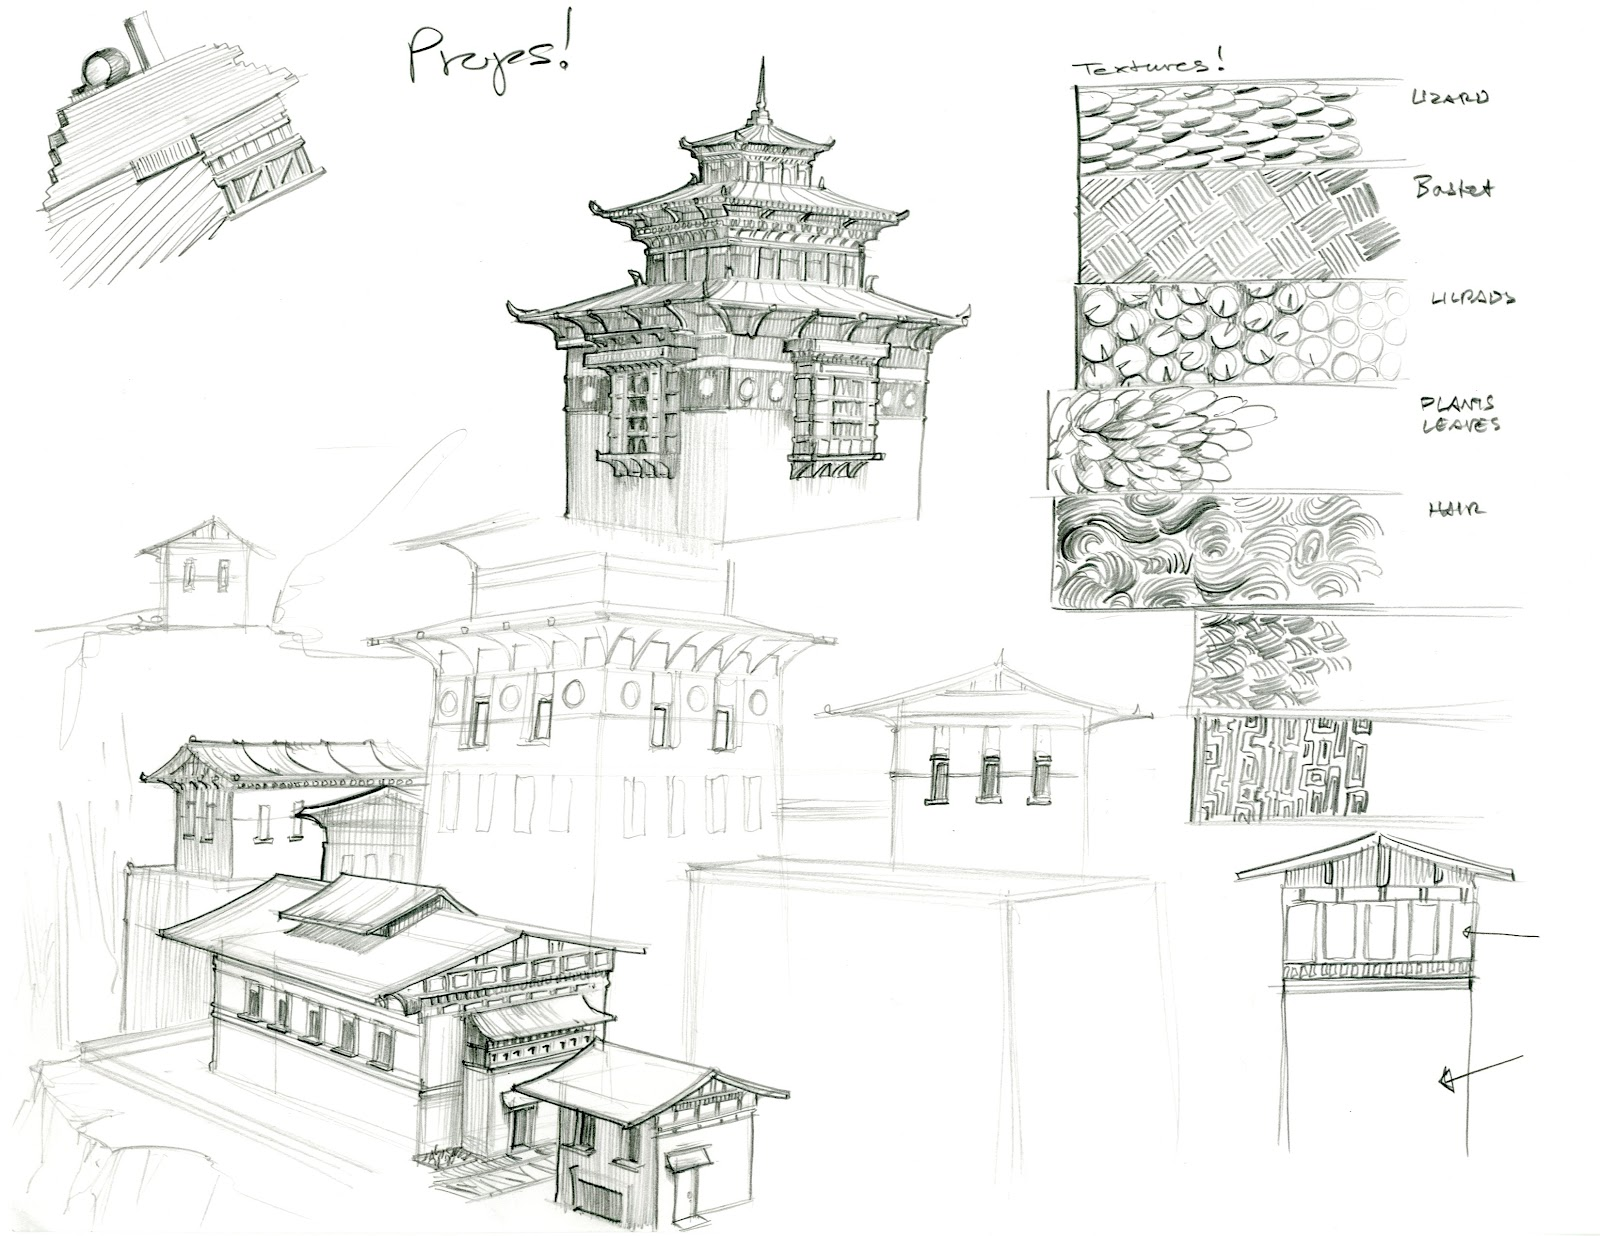 Red Engine Studios: Sketching for Environment